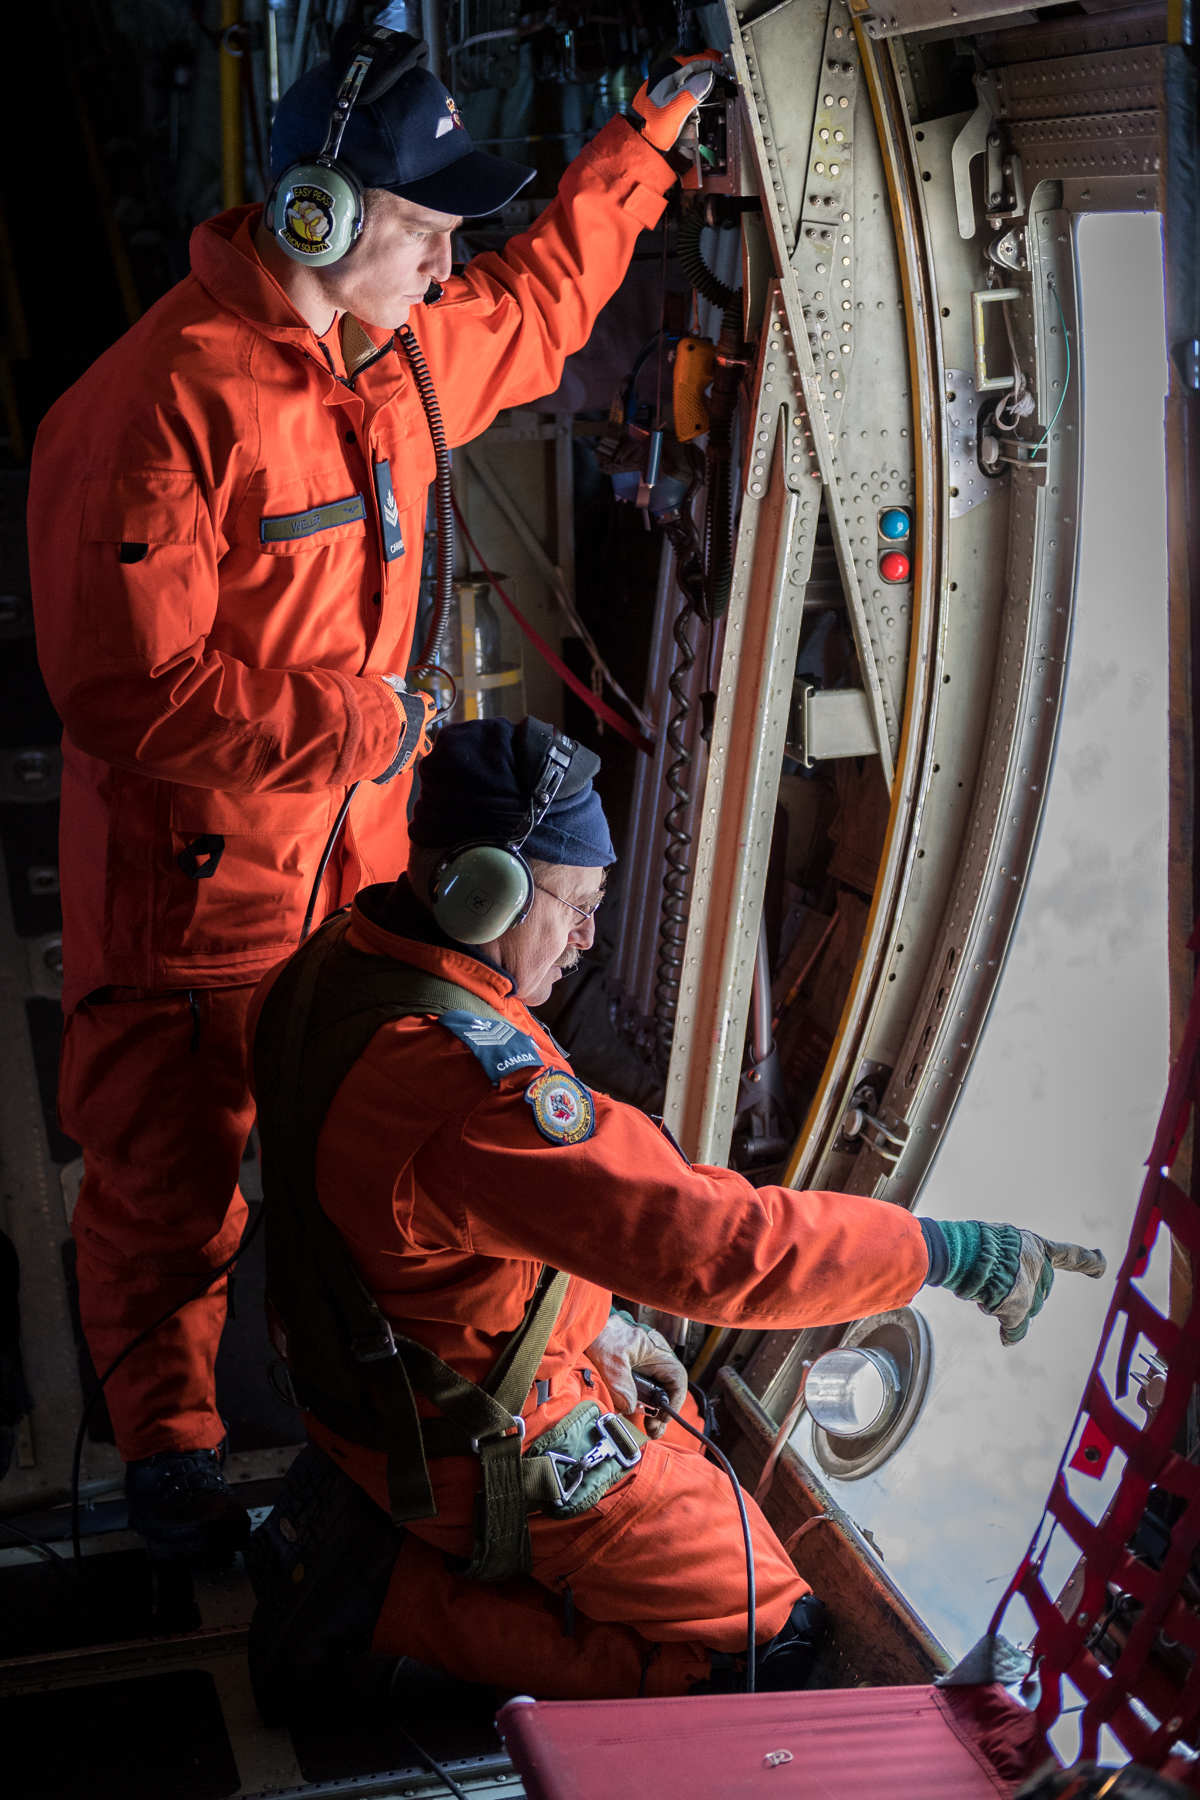 Search and rescue technicians Master Corporal Dylan Weller (standing) and Sergeant André Hotton track the descent of marker streamers from a CC-130 Hercules aircraft. PHOTO: Corporal Neil Clarkson, GD05-2018-0060-037